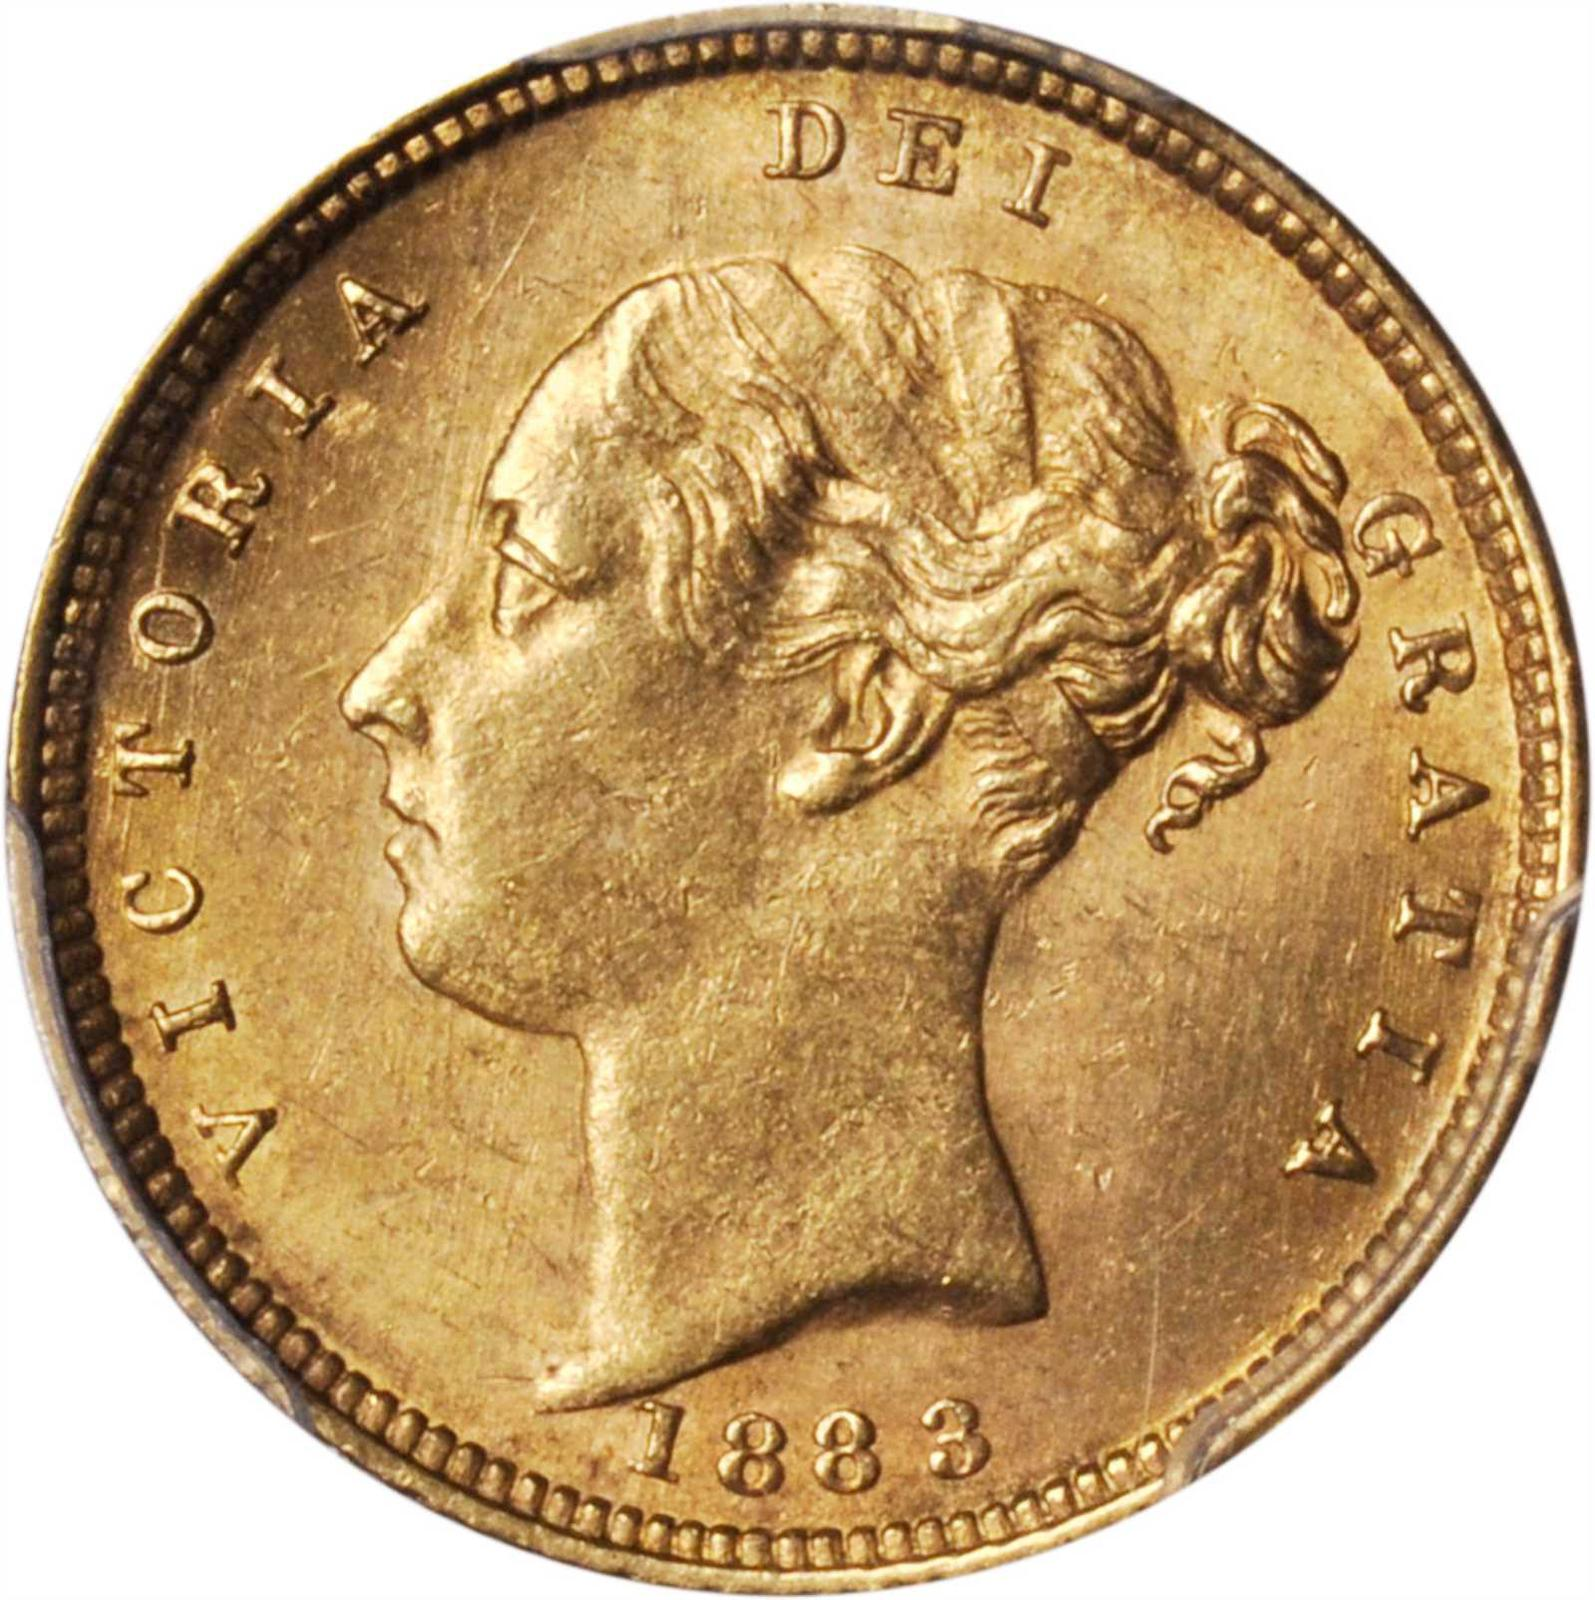 Half Sovereign (Pre-decimal): Photo Great Britain 1883 1/2 sovereign